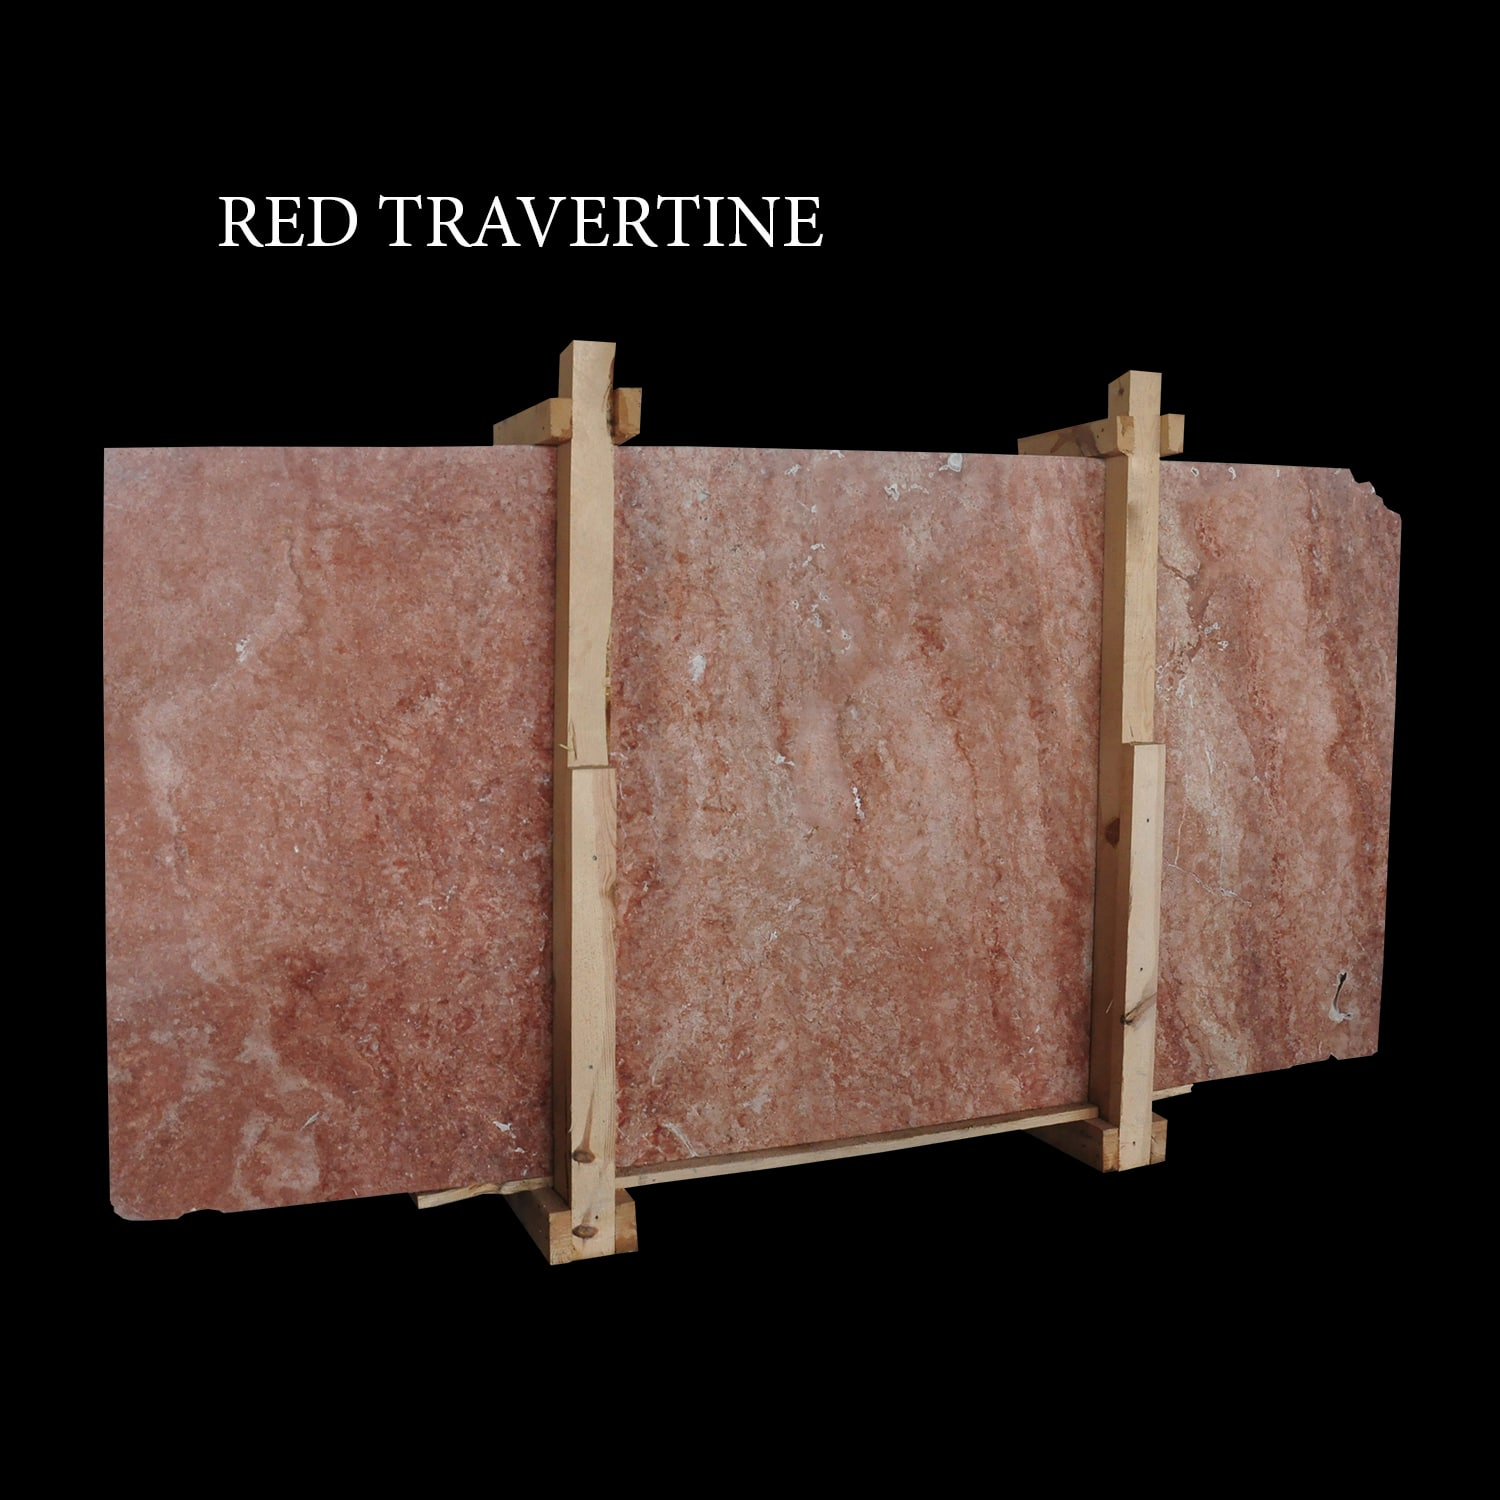 Red Travertine Slabs Rouge Fluers Travertine